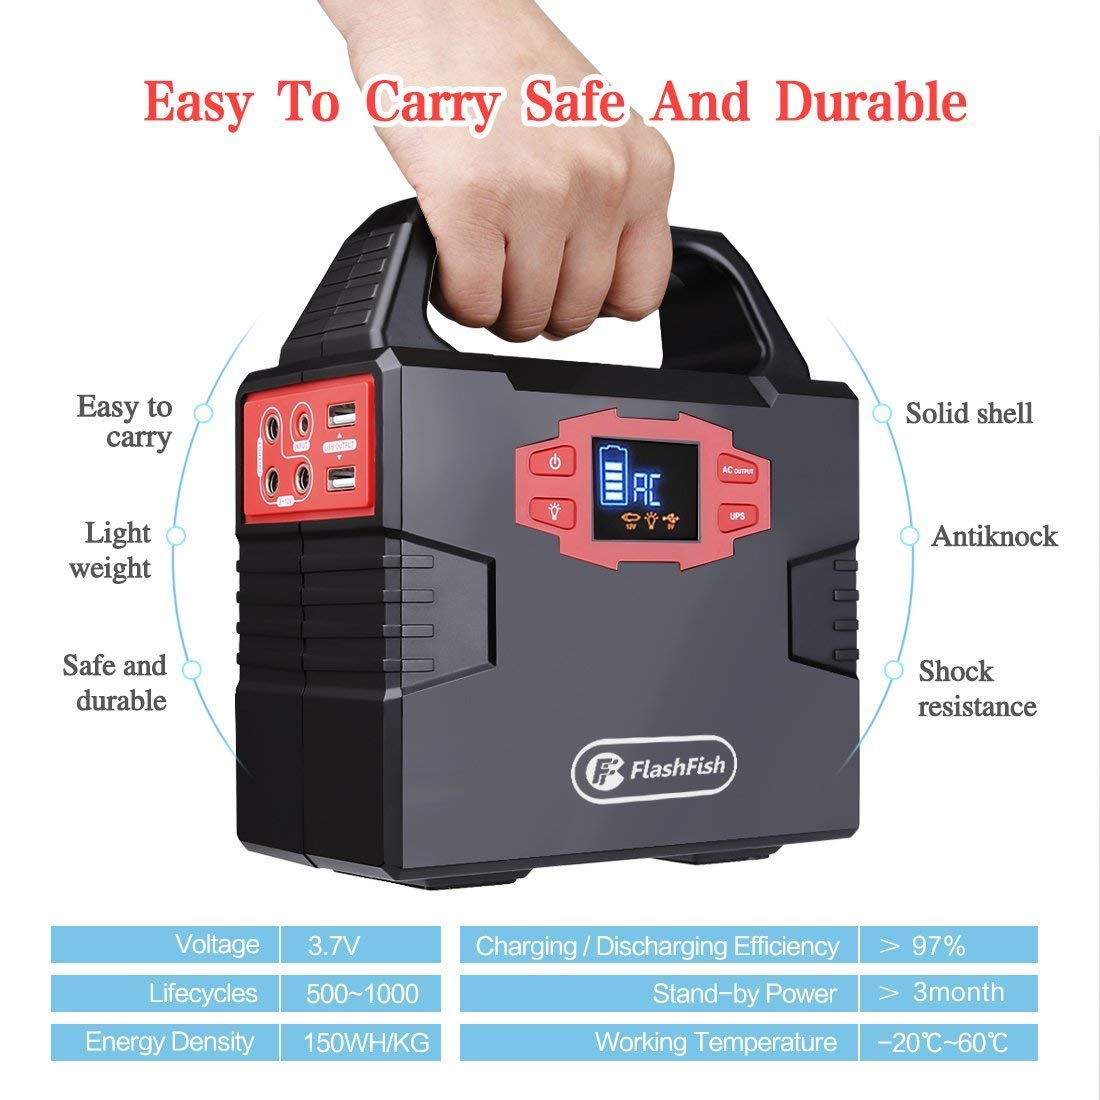 Portable Solar Generator, FlashFish 150Wh Power Station CPAP Battery for Camping, Outdoor Emergency Power Supply Lithium Backup Battery for Drone Camping Fishing, AC 110V Outlet/DC 12V Out/2 USB Ports by FF FLASHFISH (Image #6)